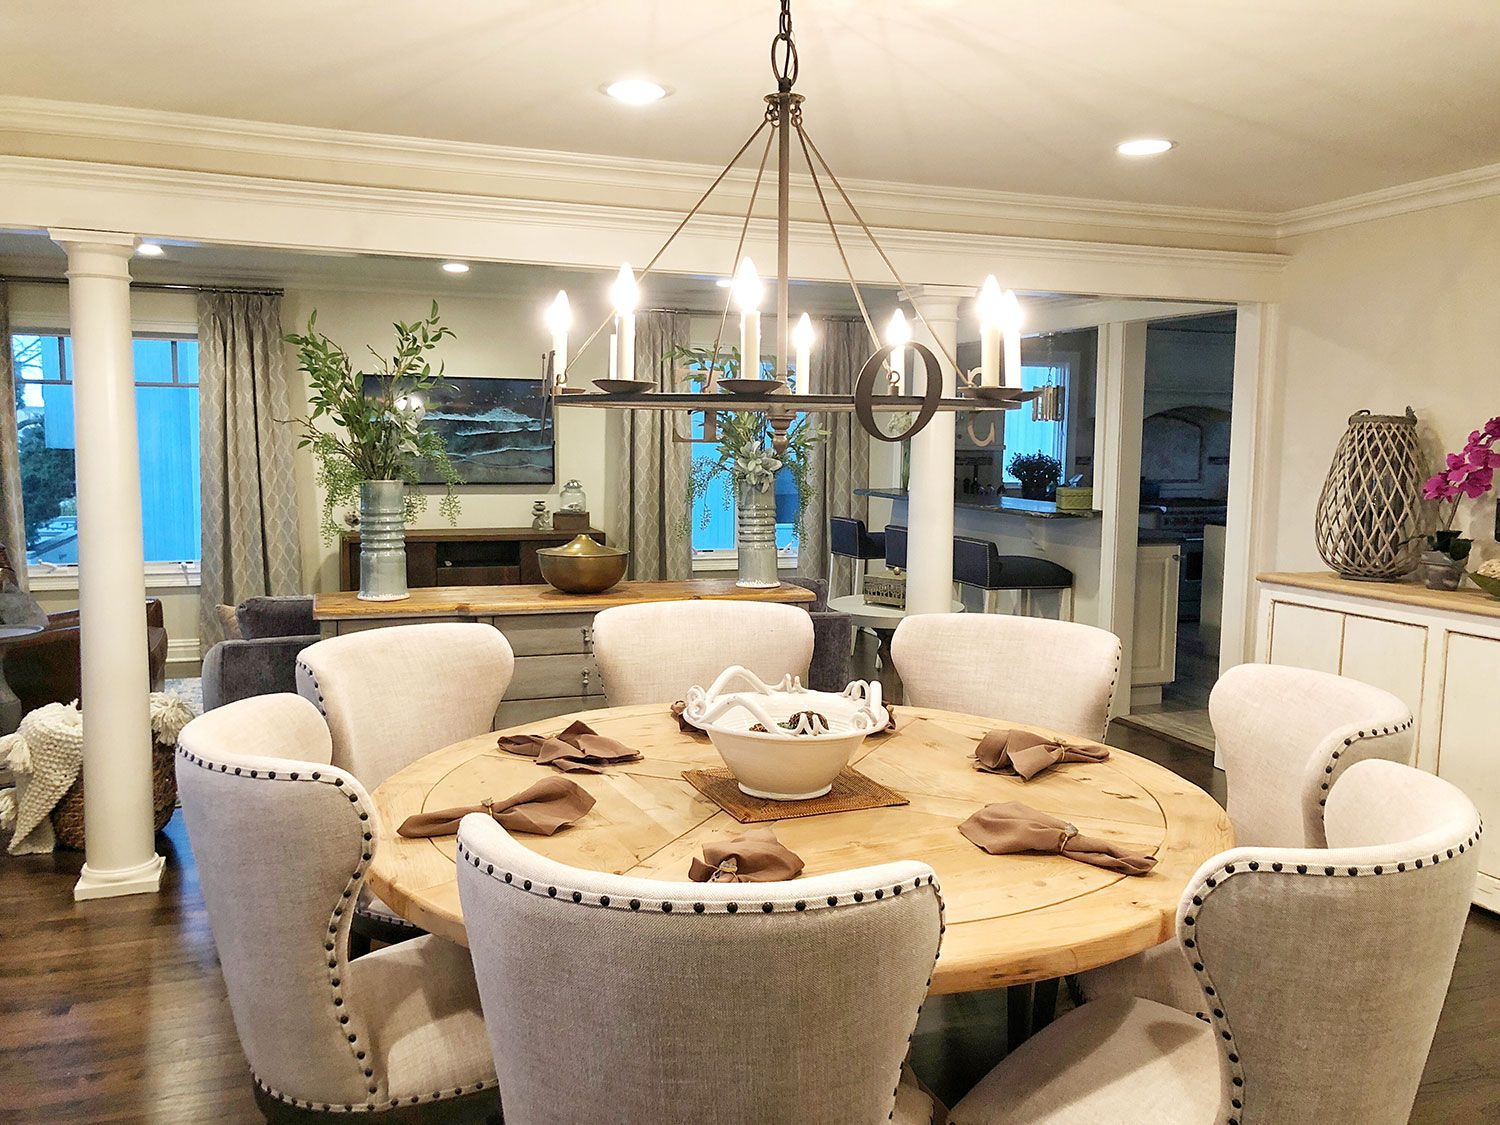 belmar, new jersey dining room interior design